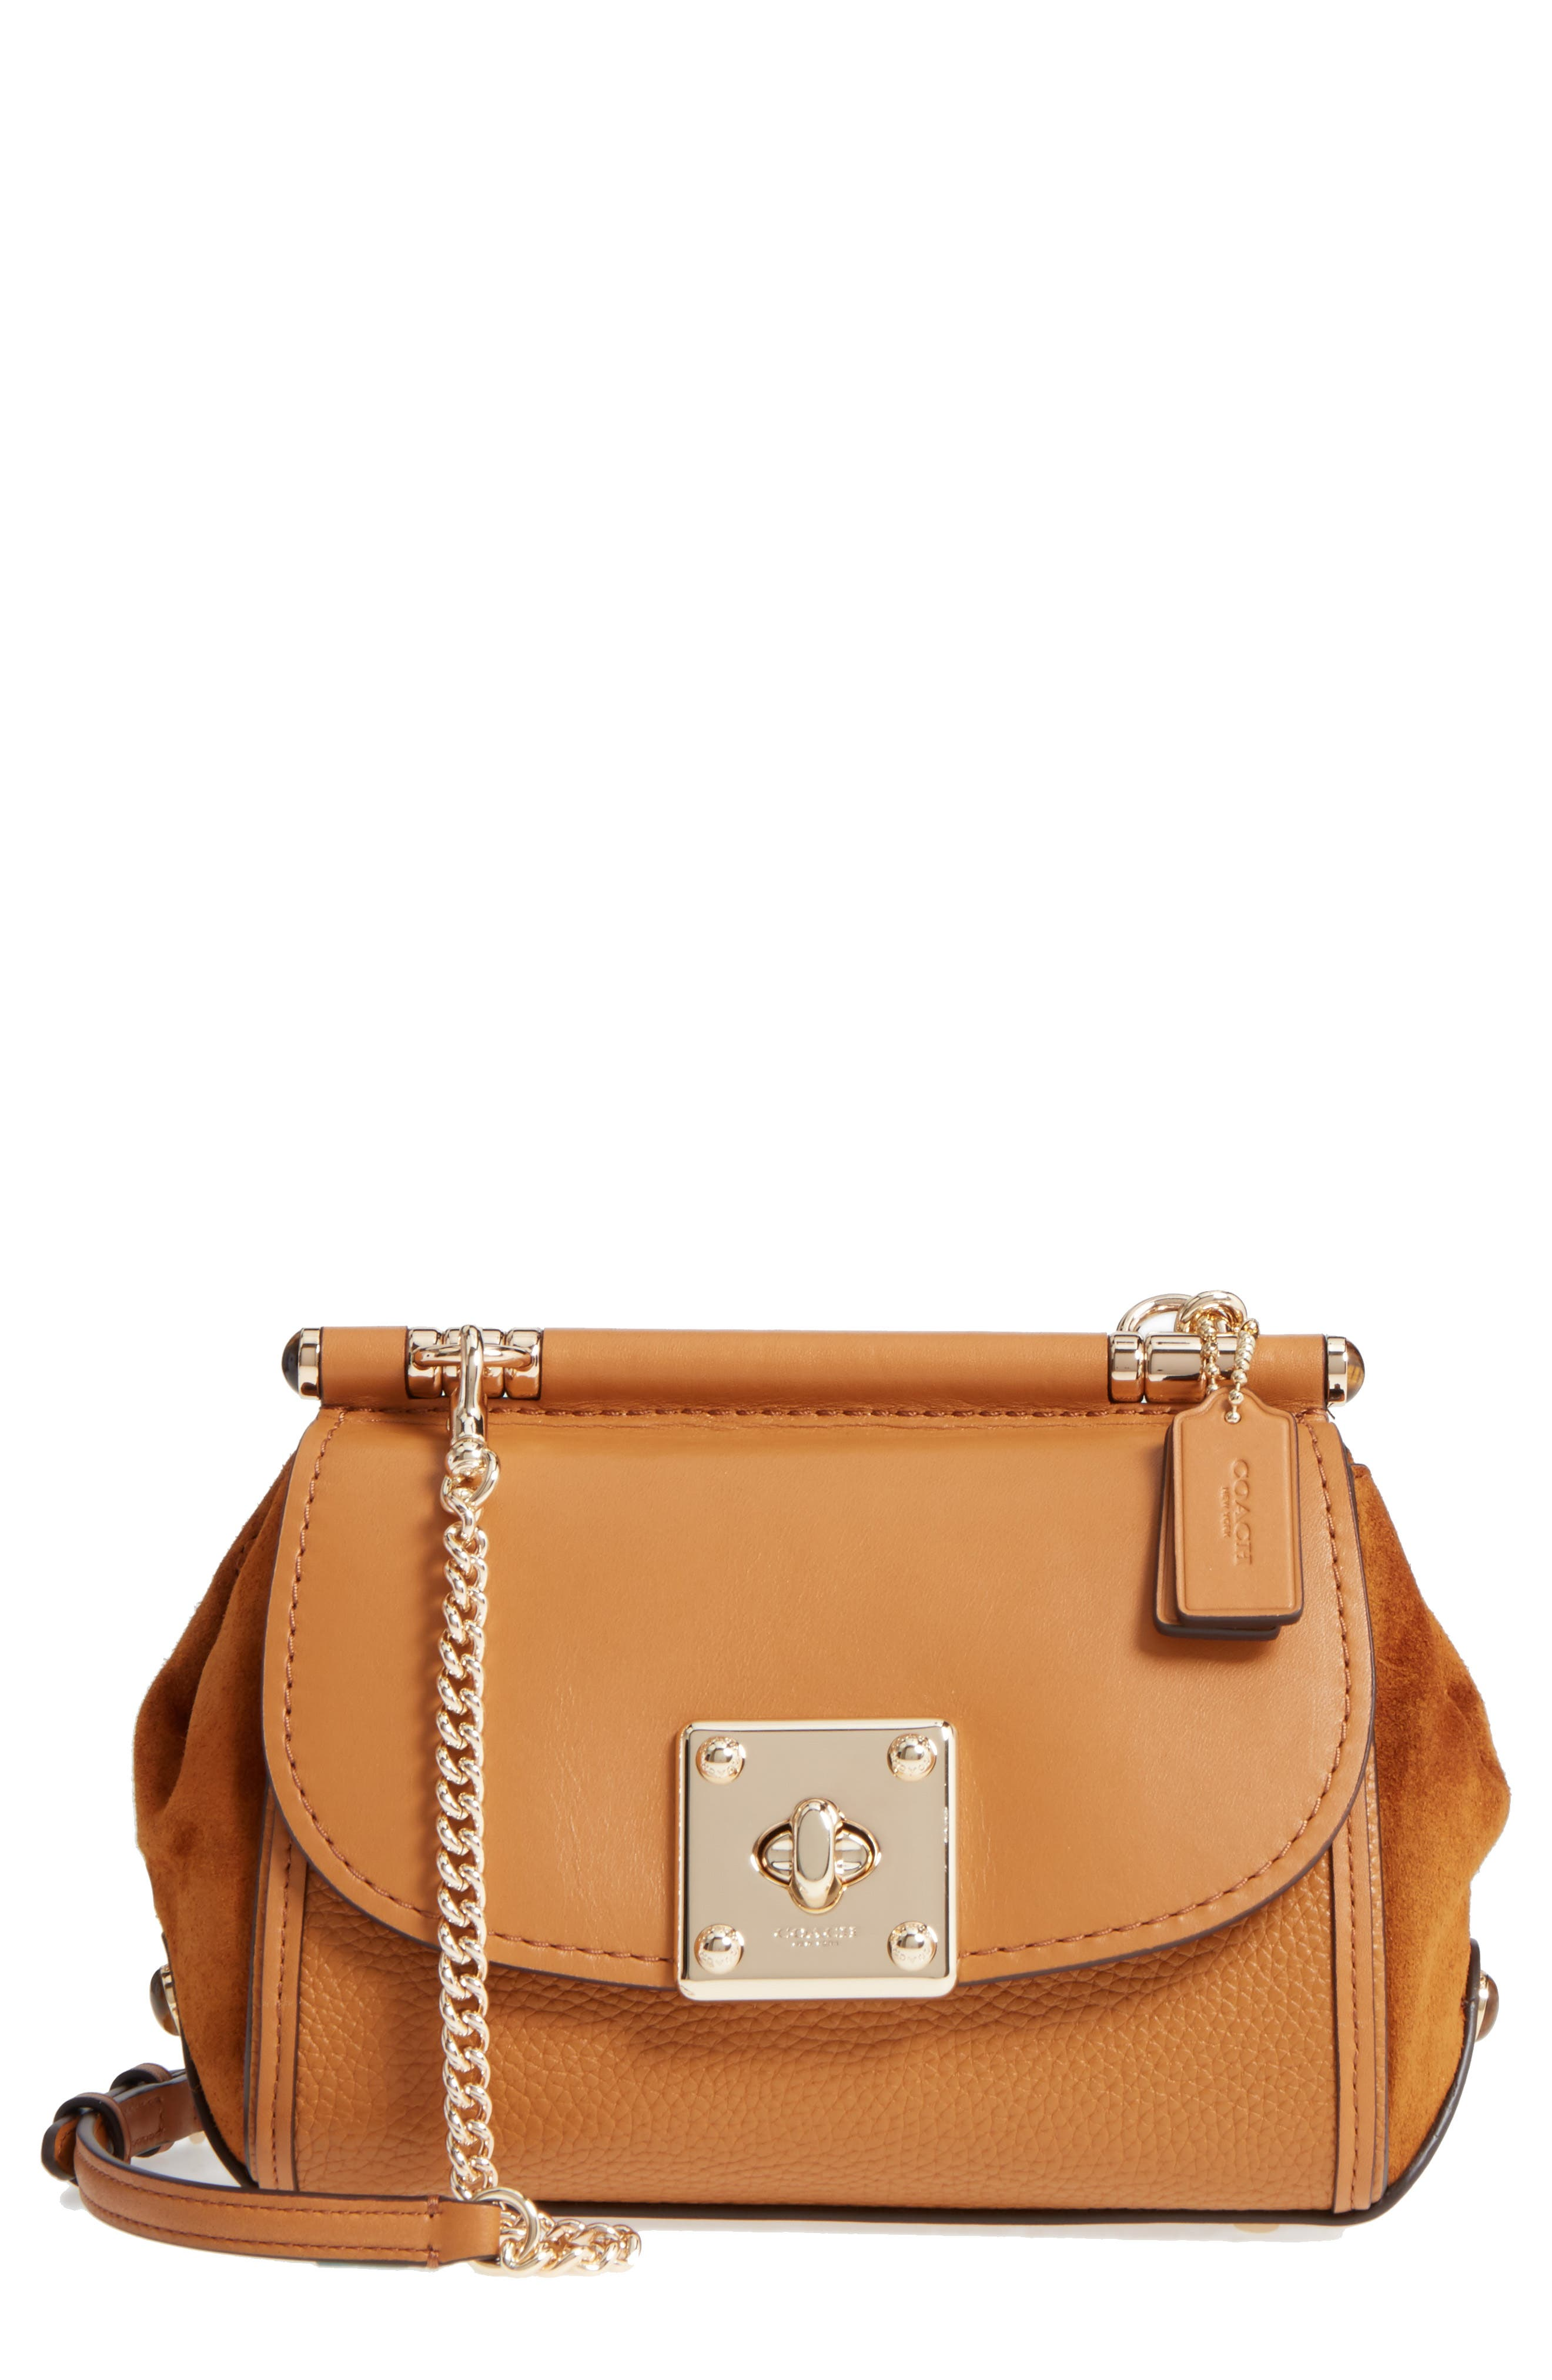 COACH Mixed Leather Crossbody Bag